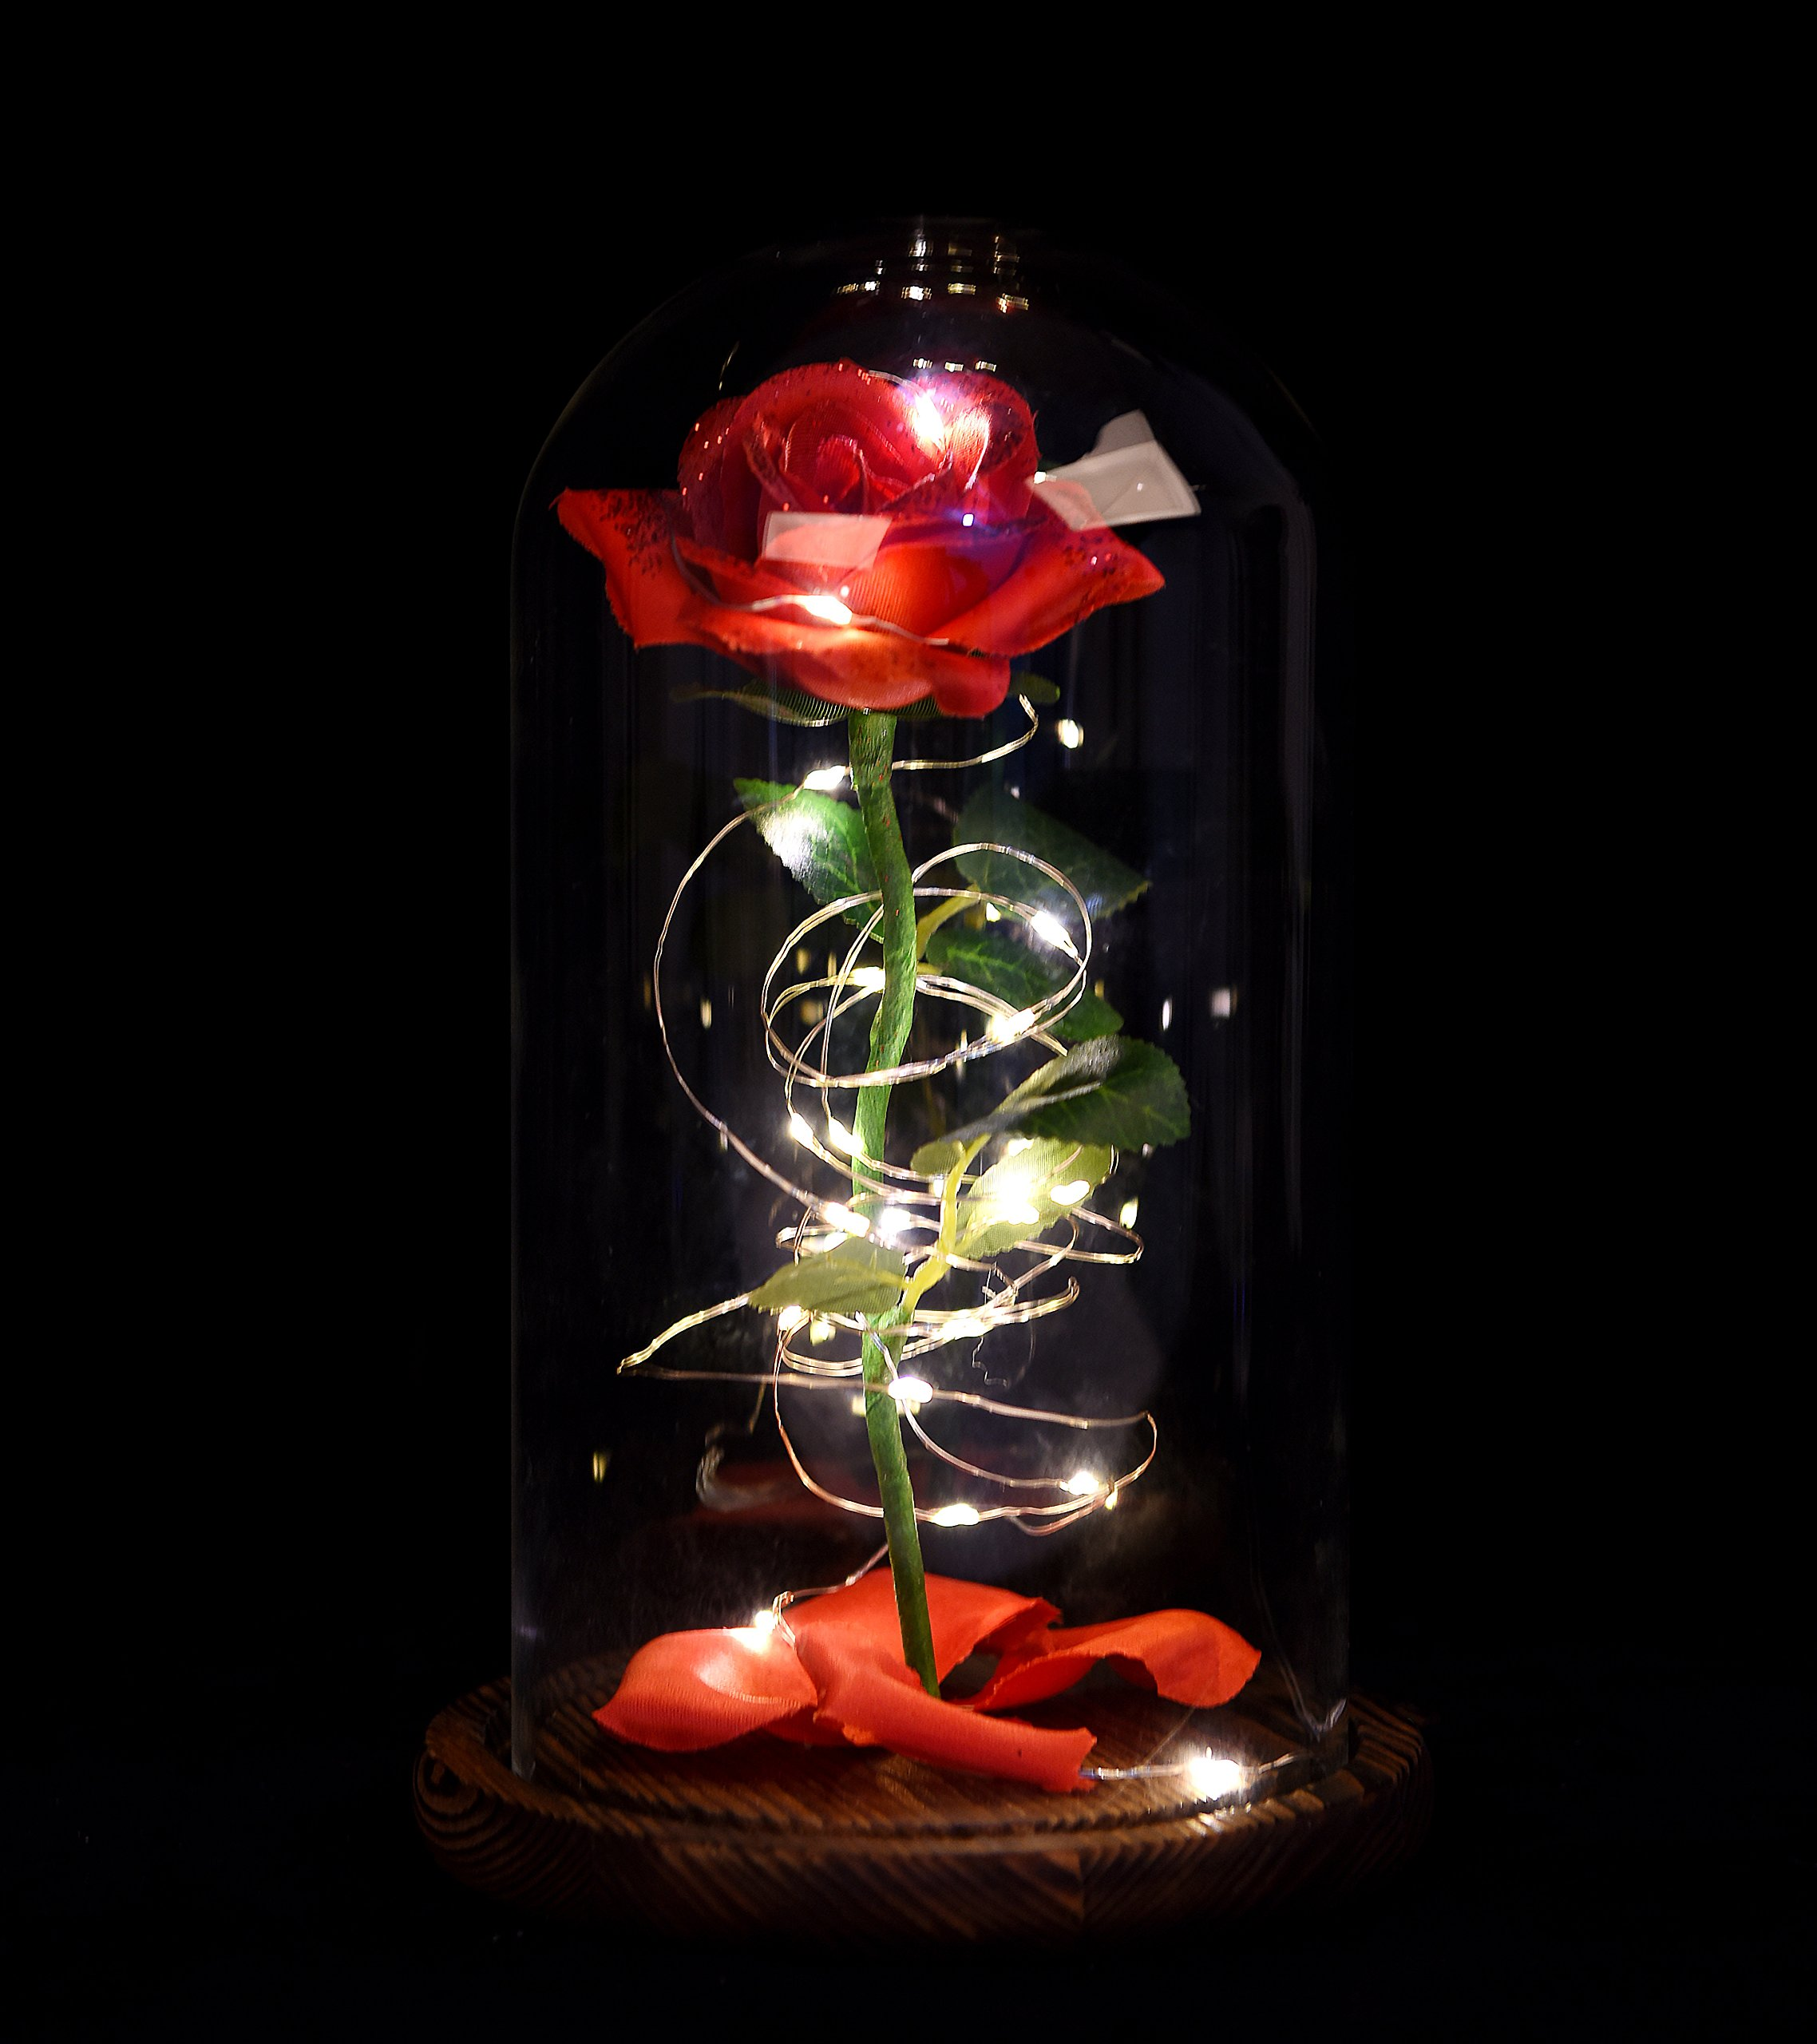 silk flower arrangements snowkingdom beauty the beast red rose in glass dome flower led lamp night light with fallen petals on a wooden base size 9x6 inch